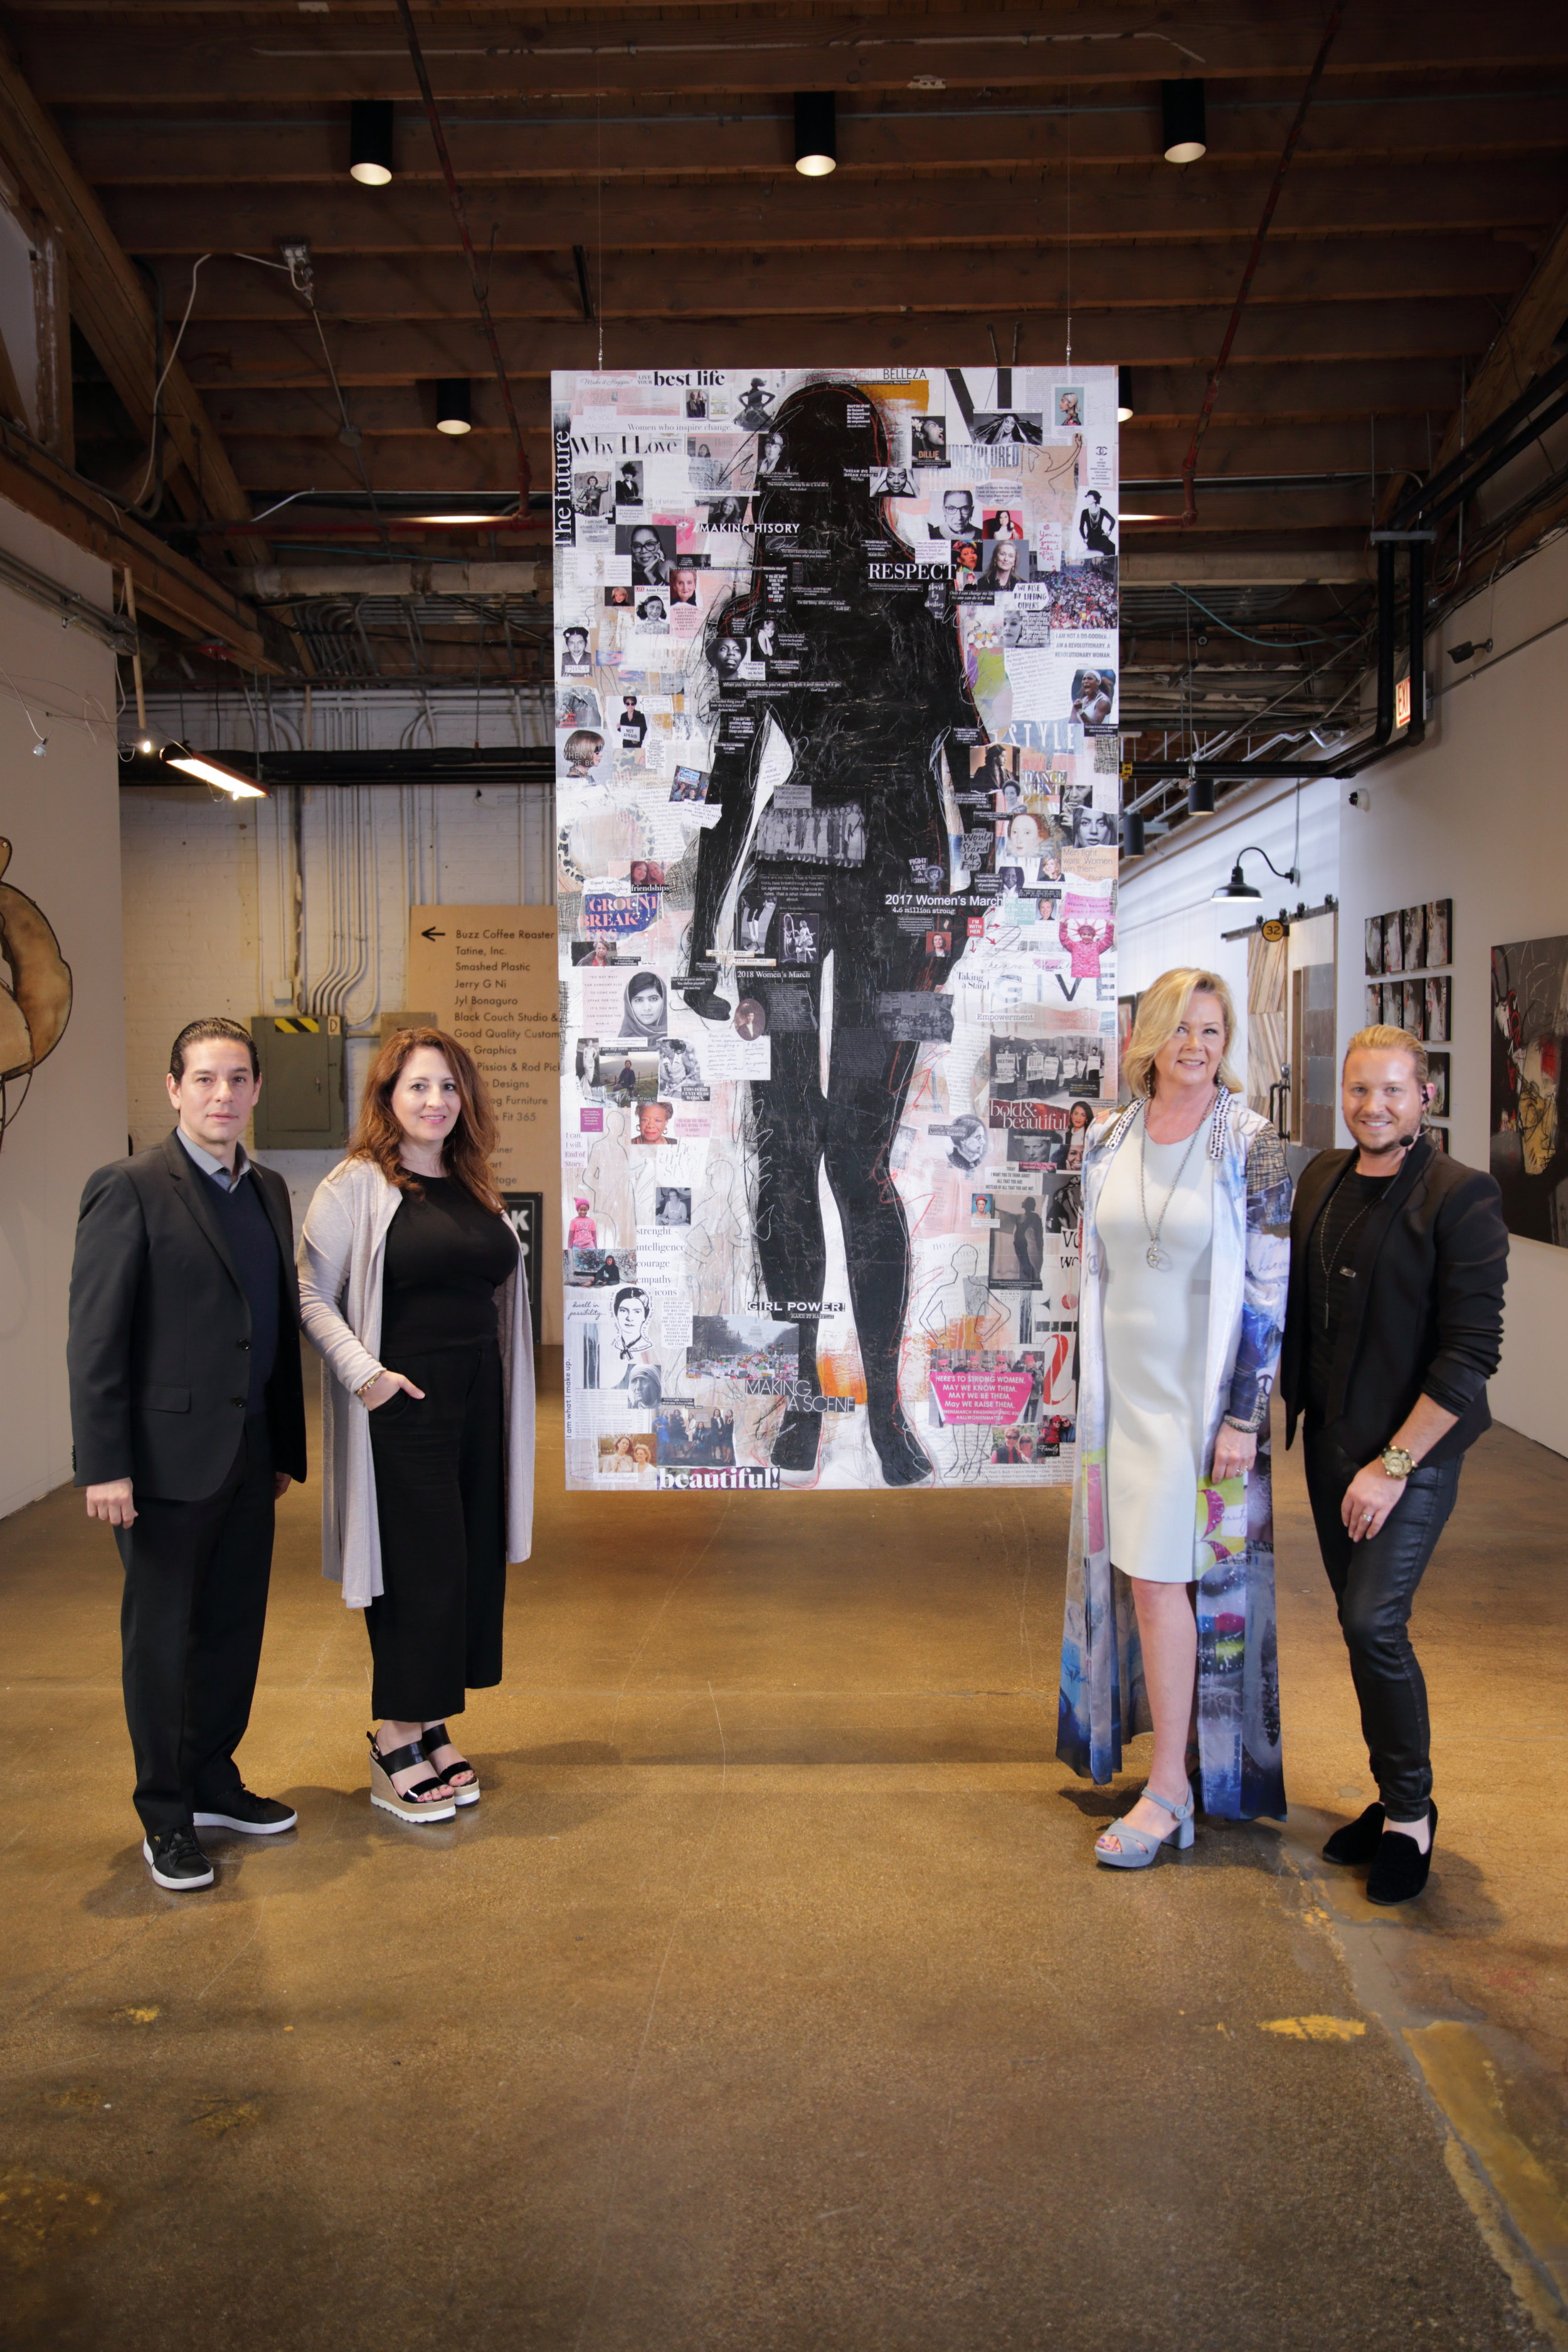 "(L to R) Joseph Nebolsky de Ochoa & Cathy Demetropoulos, (Czar Marcom), Linda Ann Weber, Constantine James (show director) in front of ""All That We Are"", Weber's homage to women's empowerment"